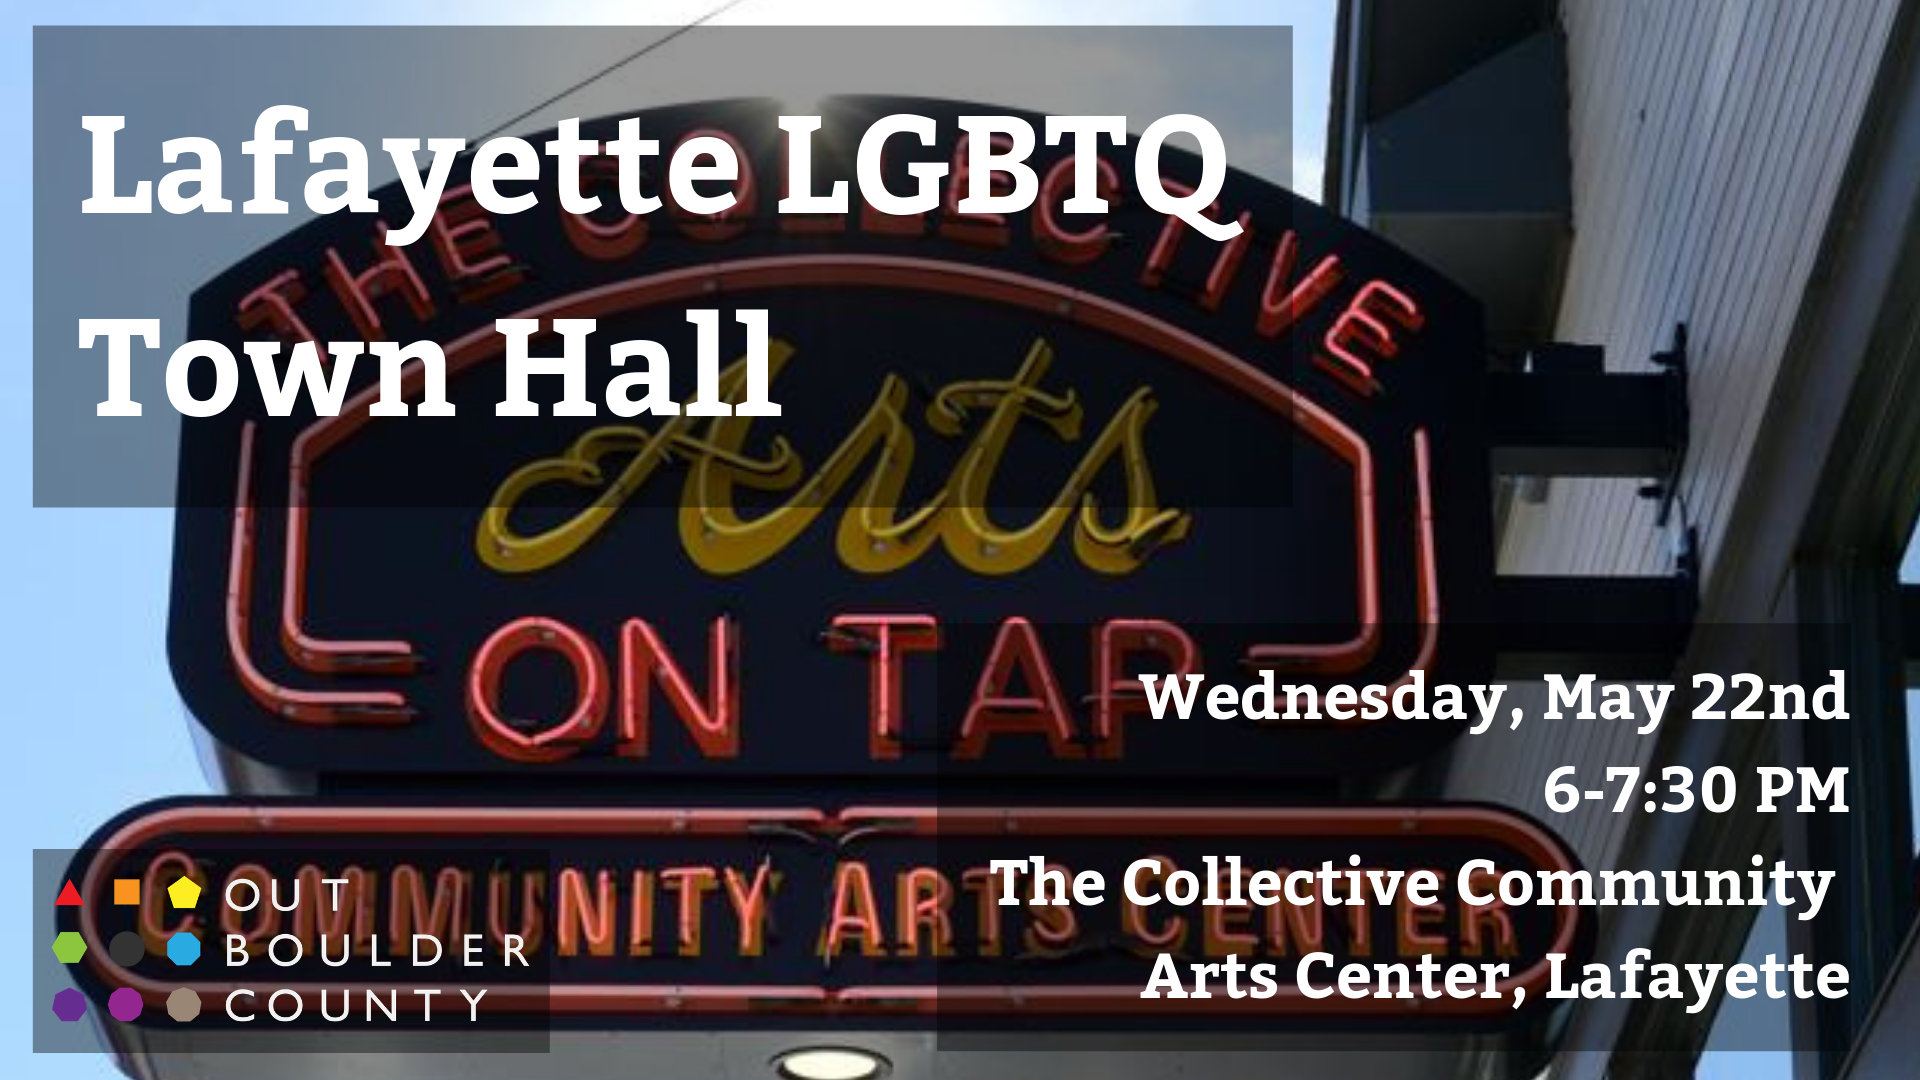 Updated_Lafayette LGBTQ Town Hall.png